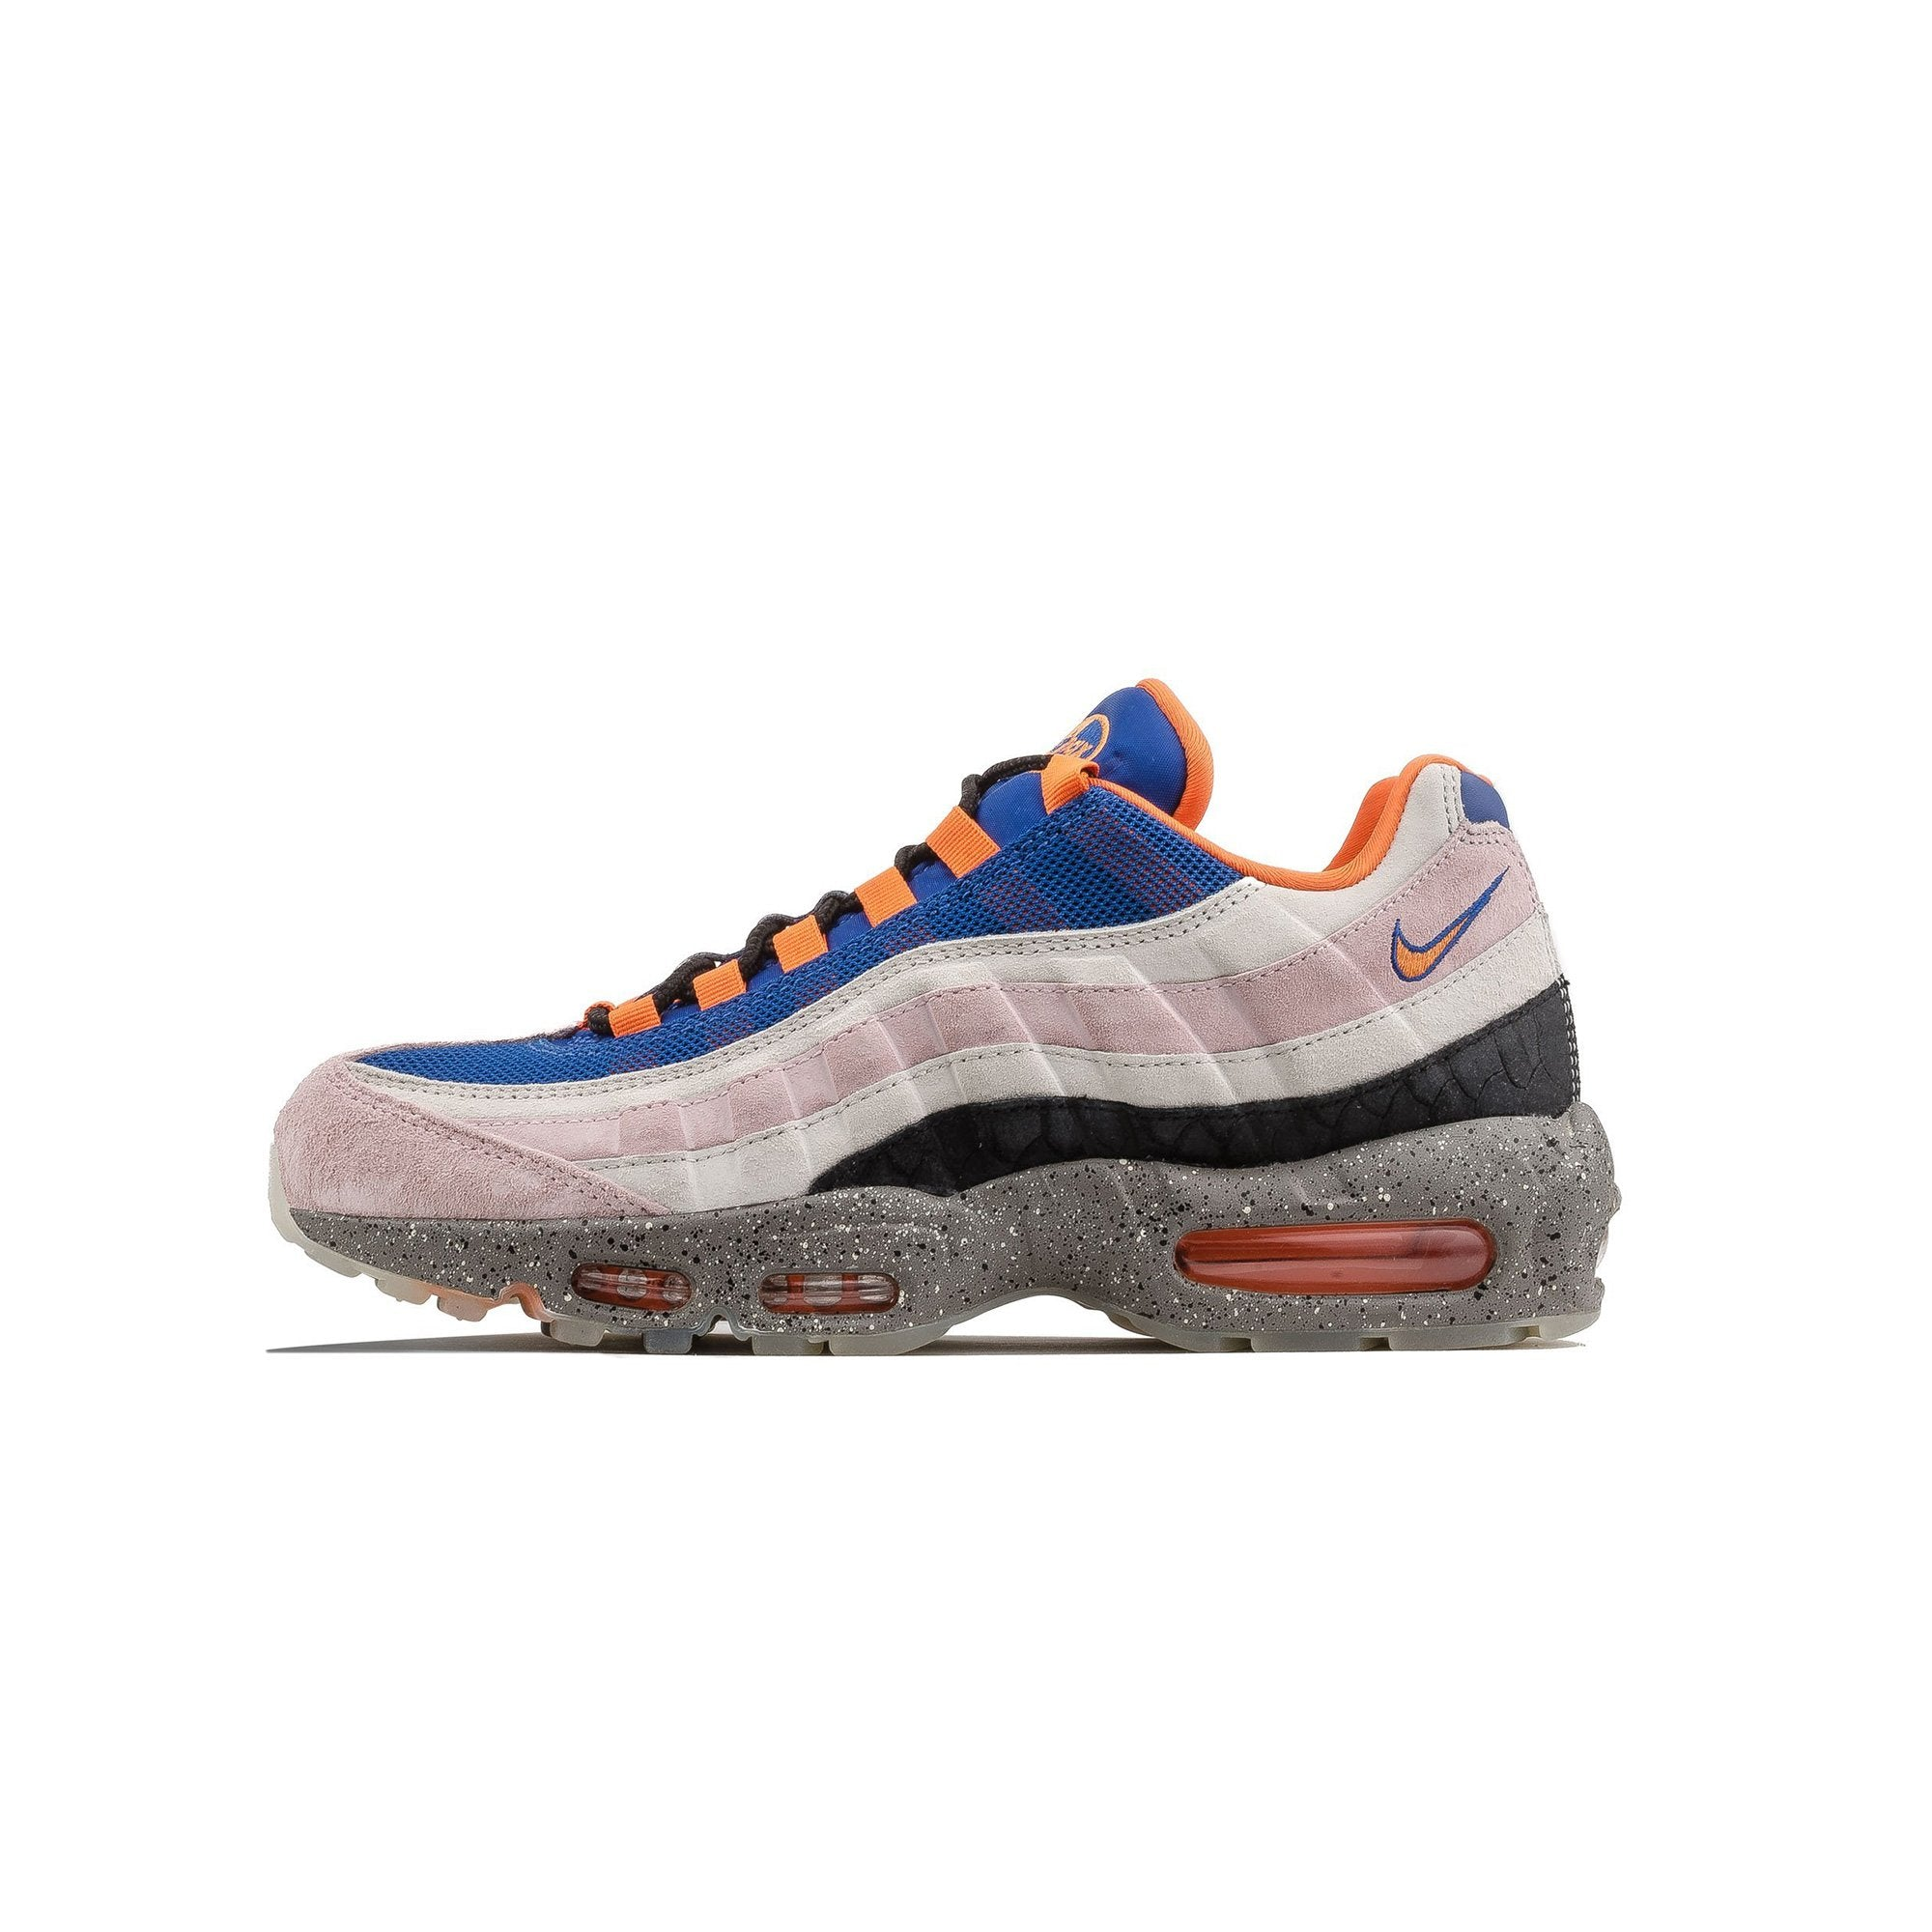 various colors 6953d 33851 Details about Nike Air Max 95 Mowabb King Of The Mountain Champagne Royal  Cream AV7014-600